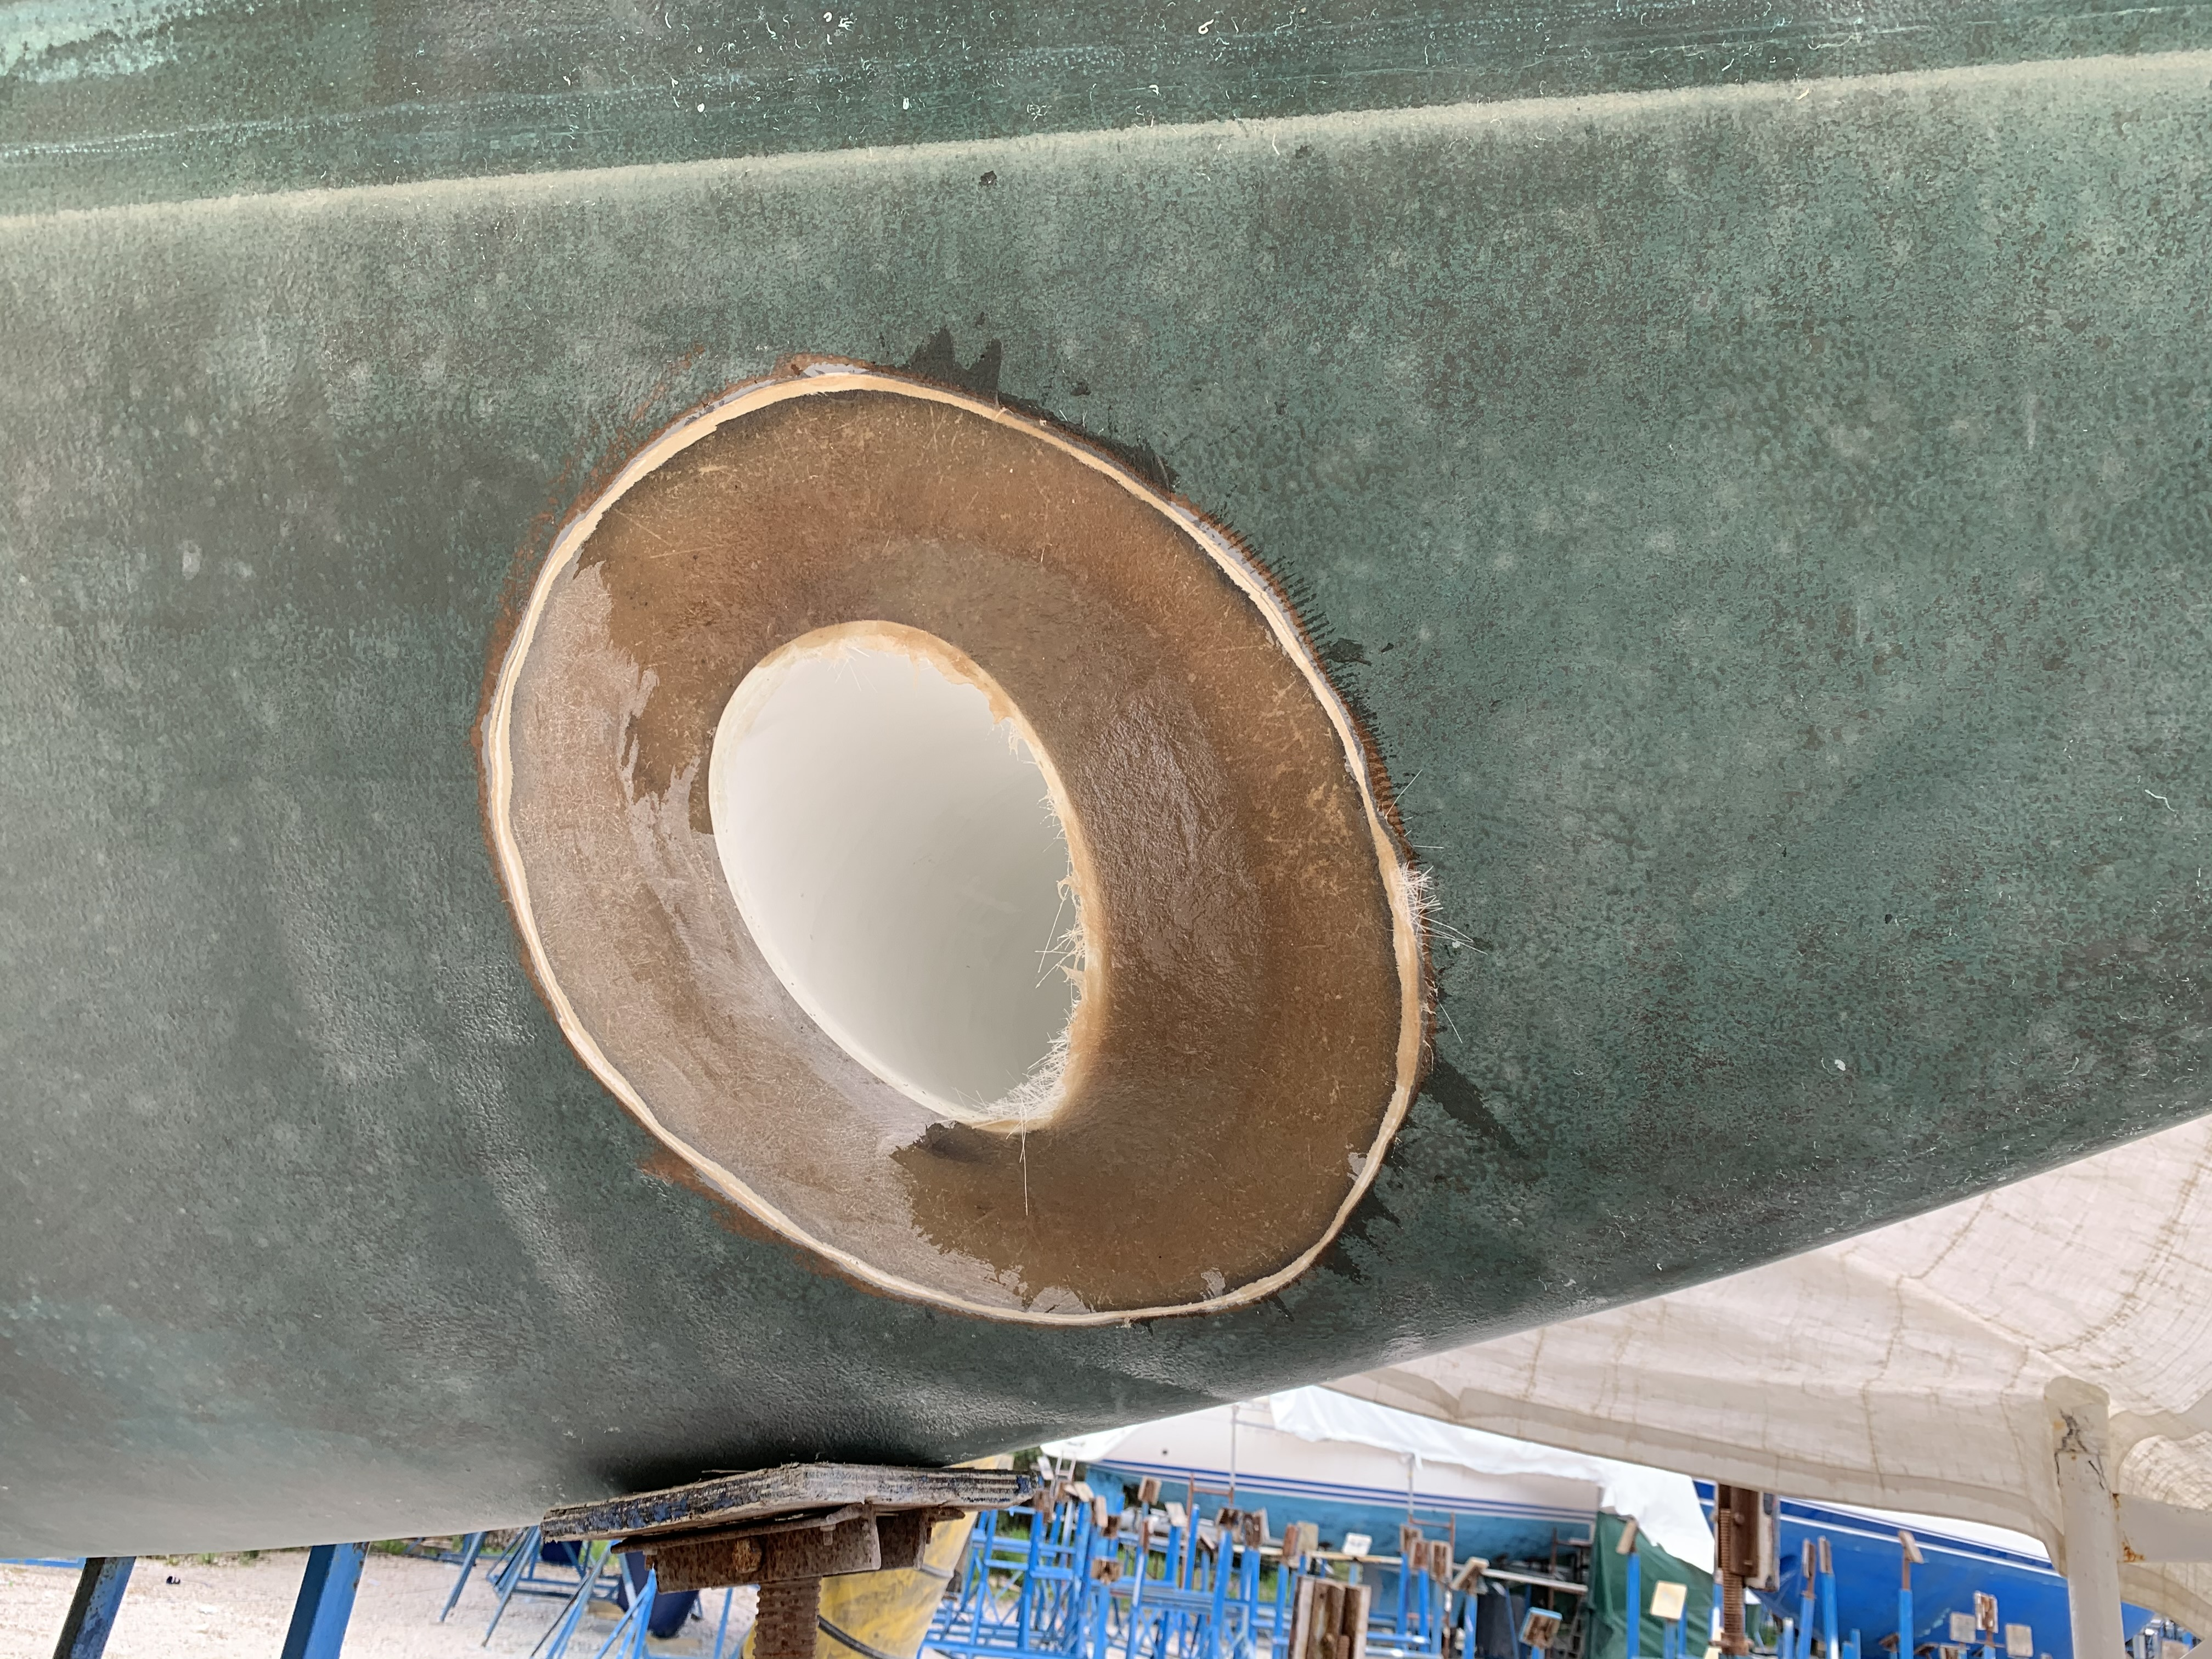 Bow Thruster construction and installation